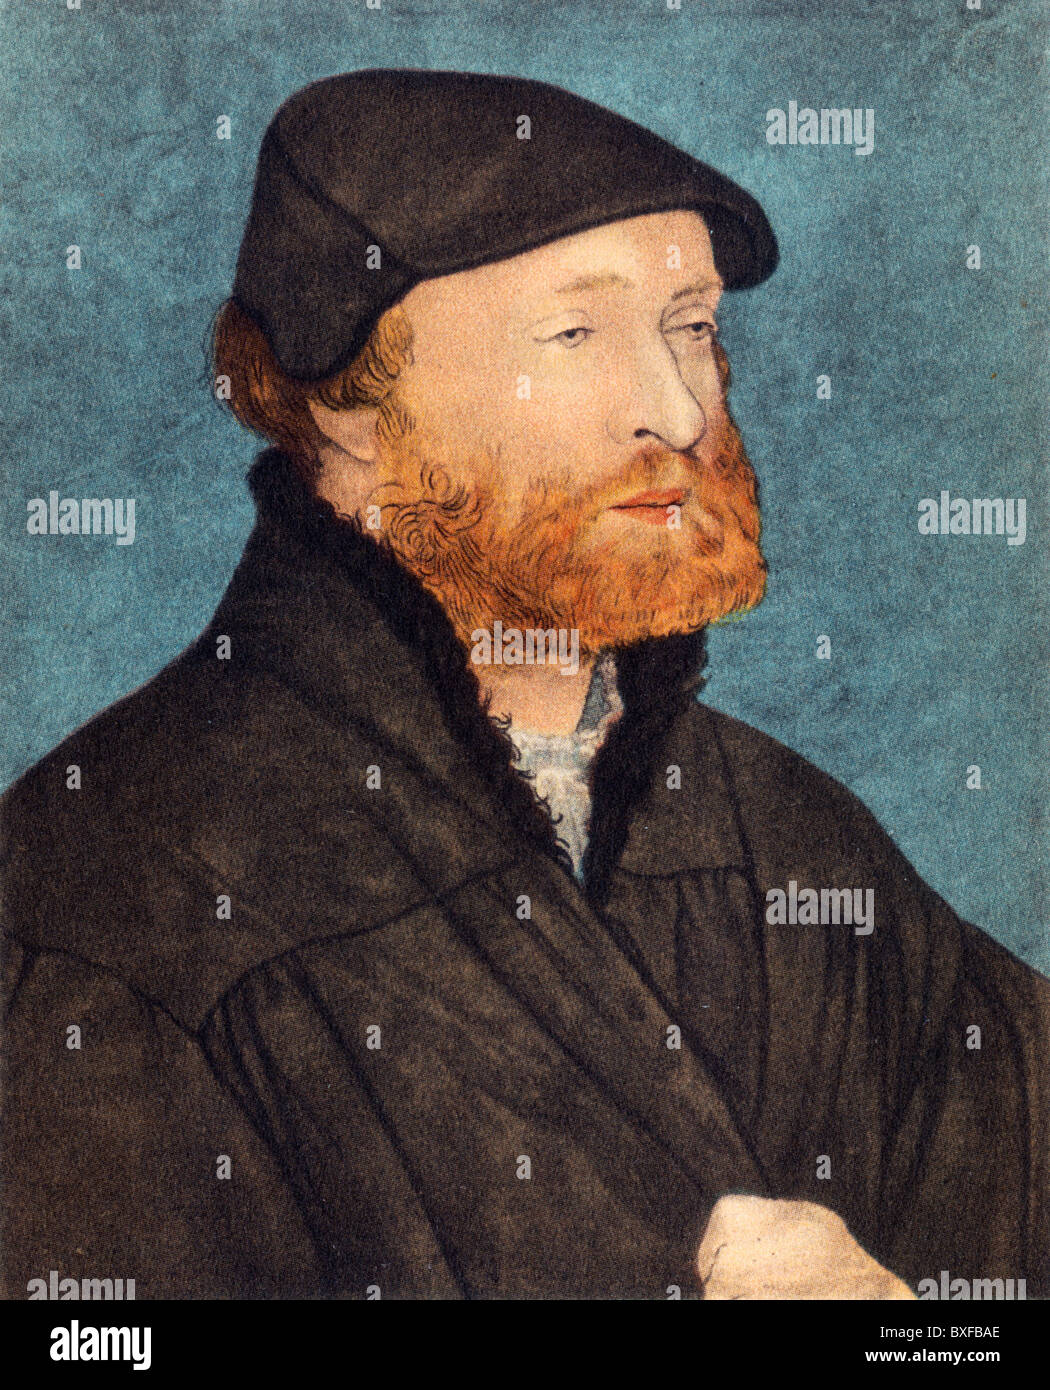 Self Portrait by Hans Holbein the Younger when he was about 40 years of age; Colour Illustration; - Stock Image